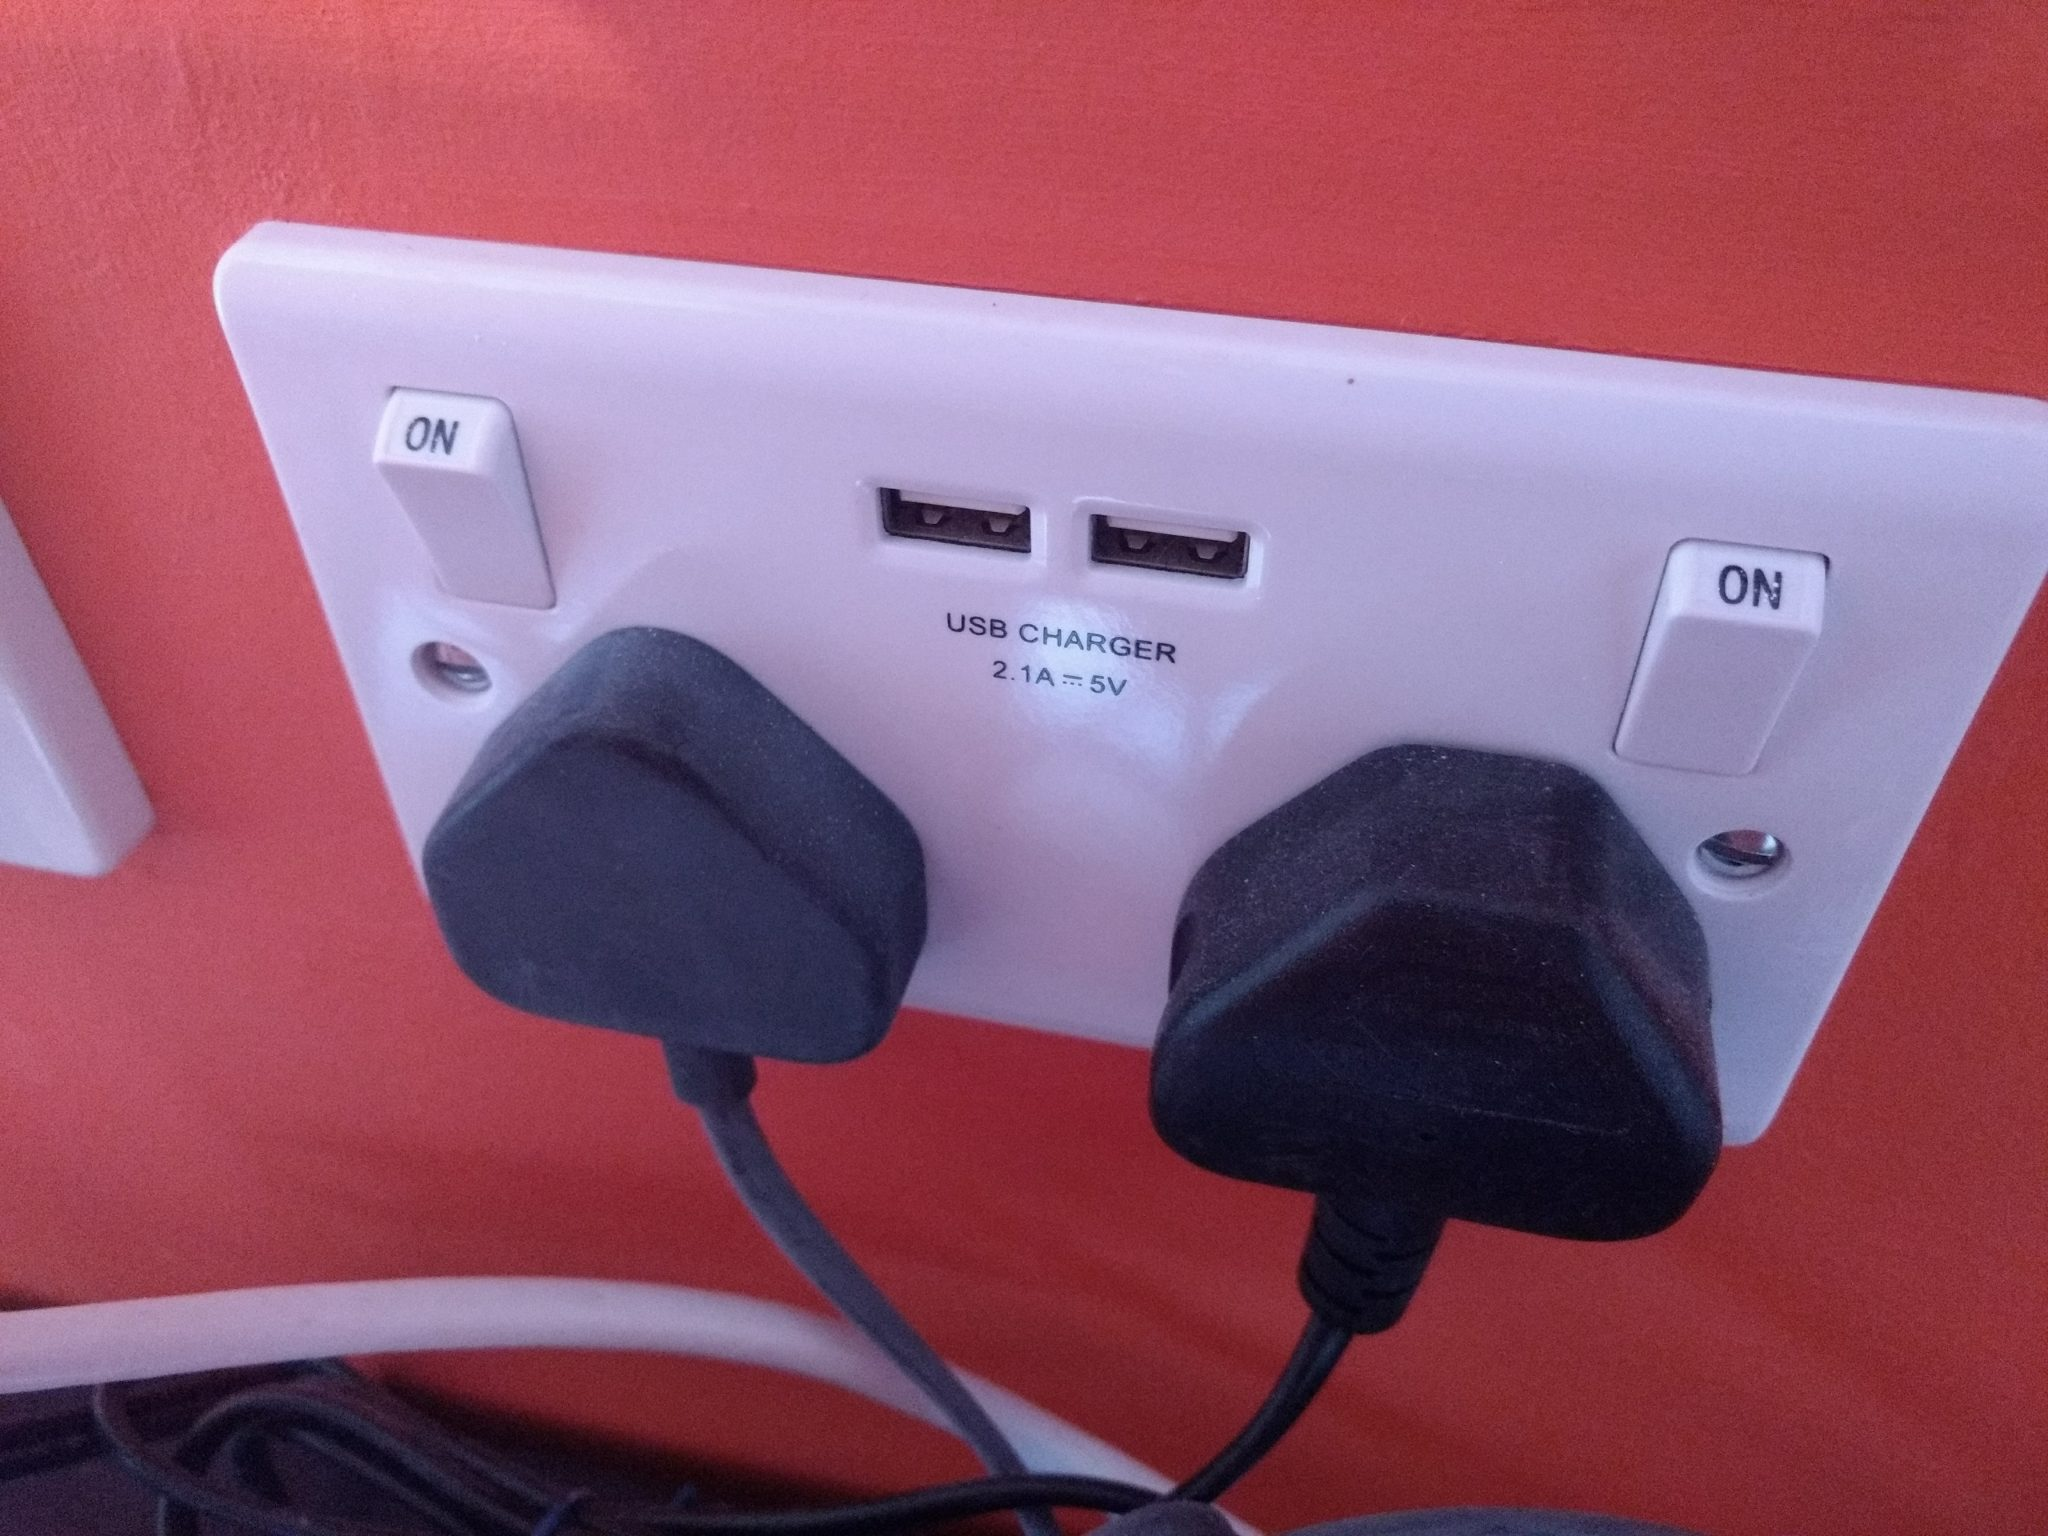 Double socket behind TV